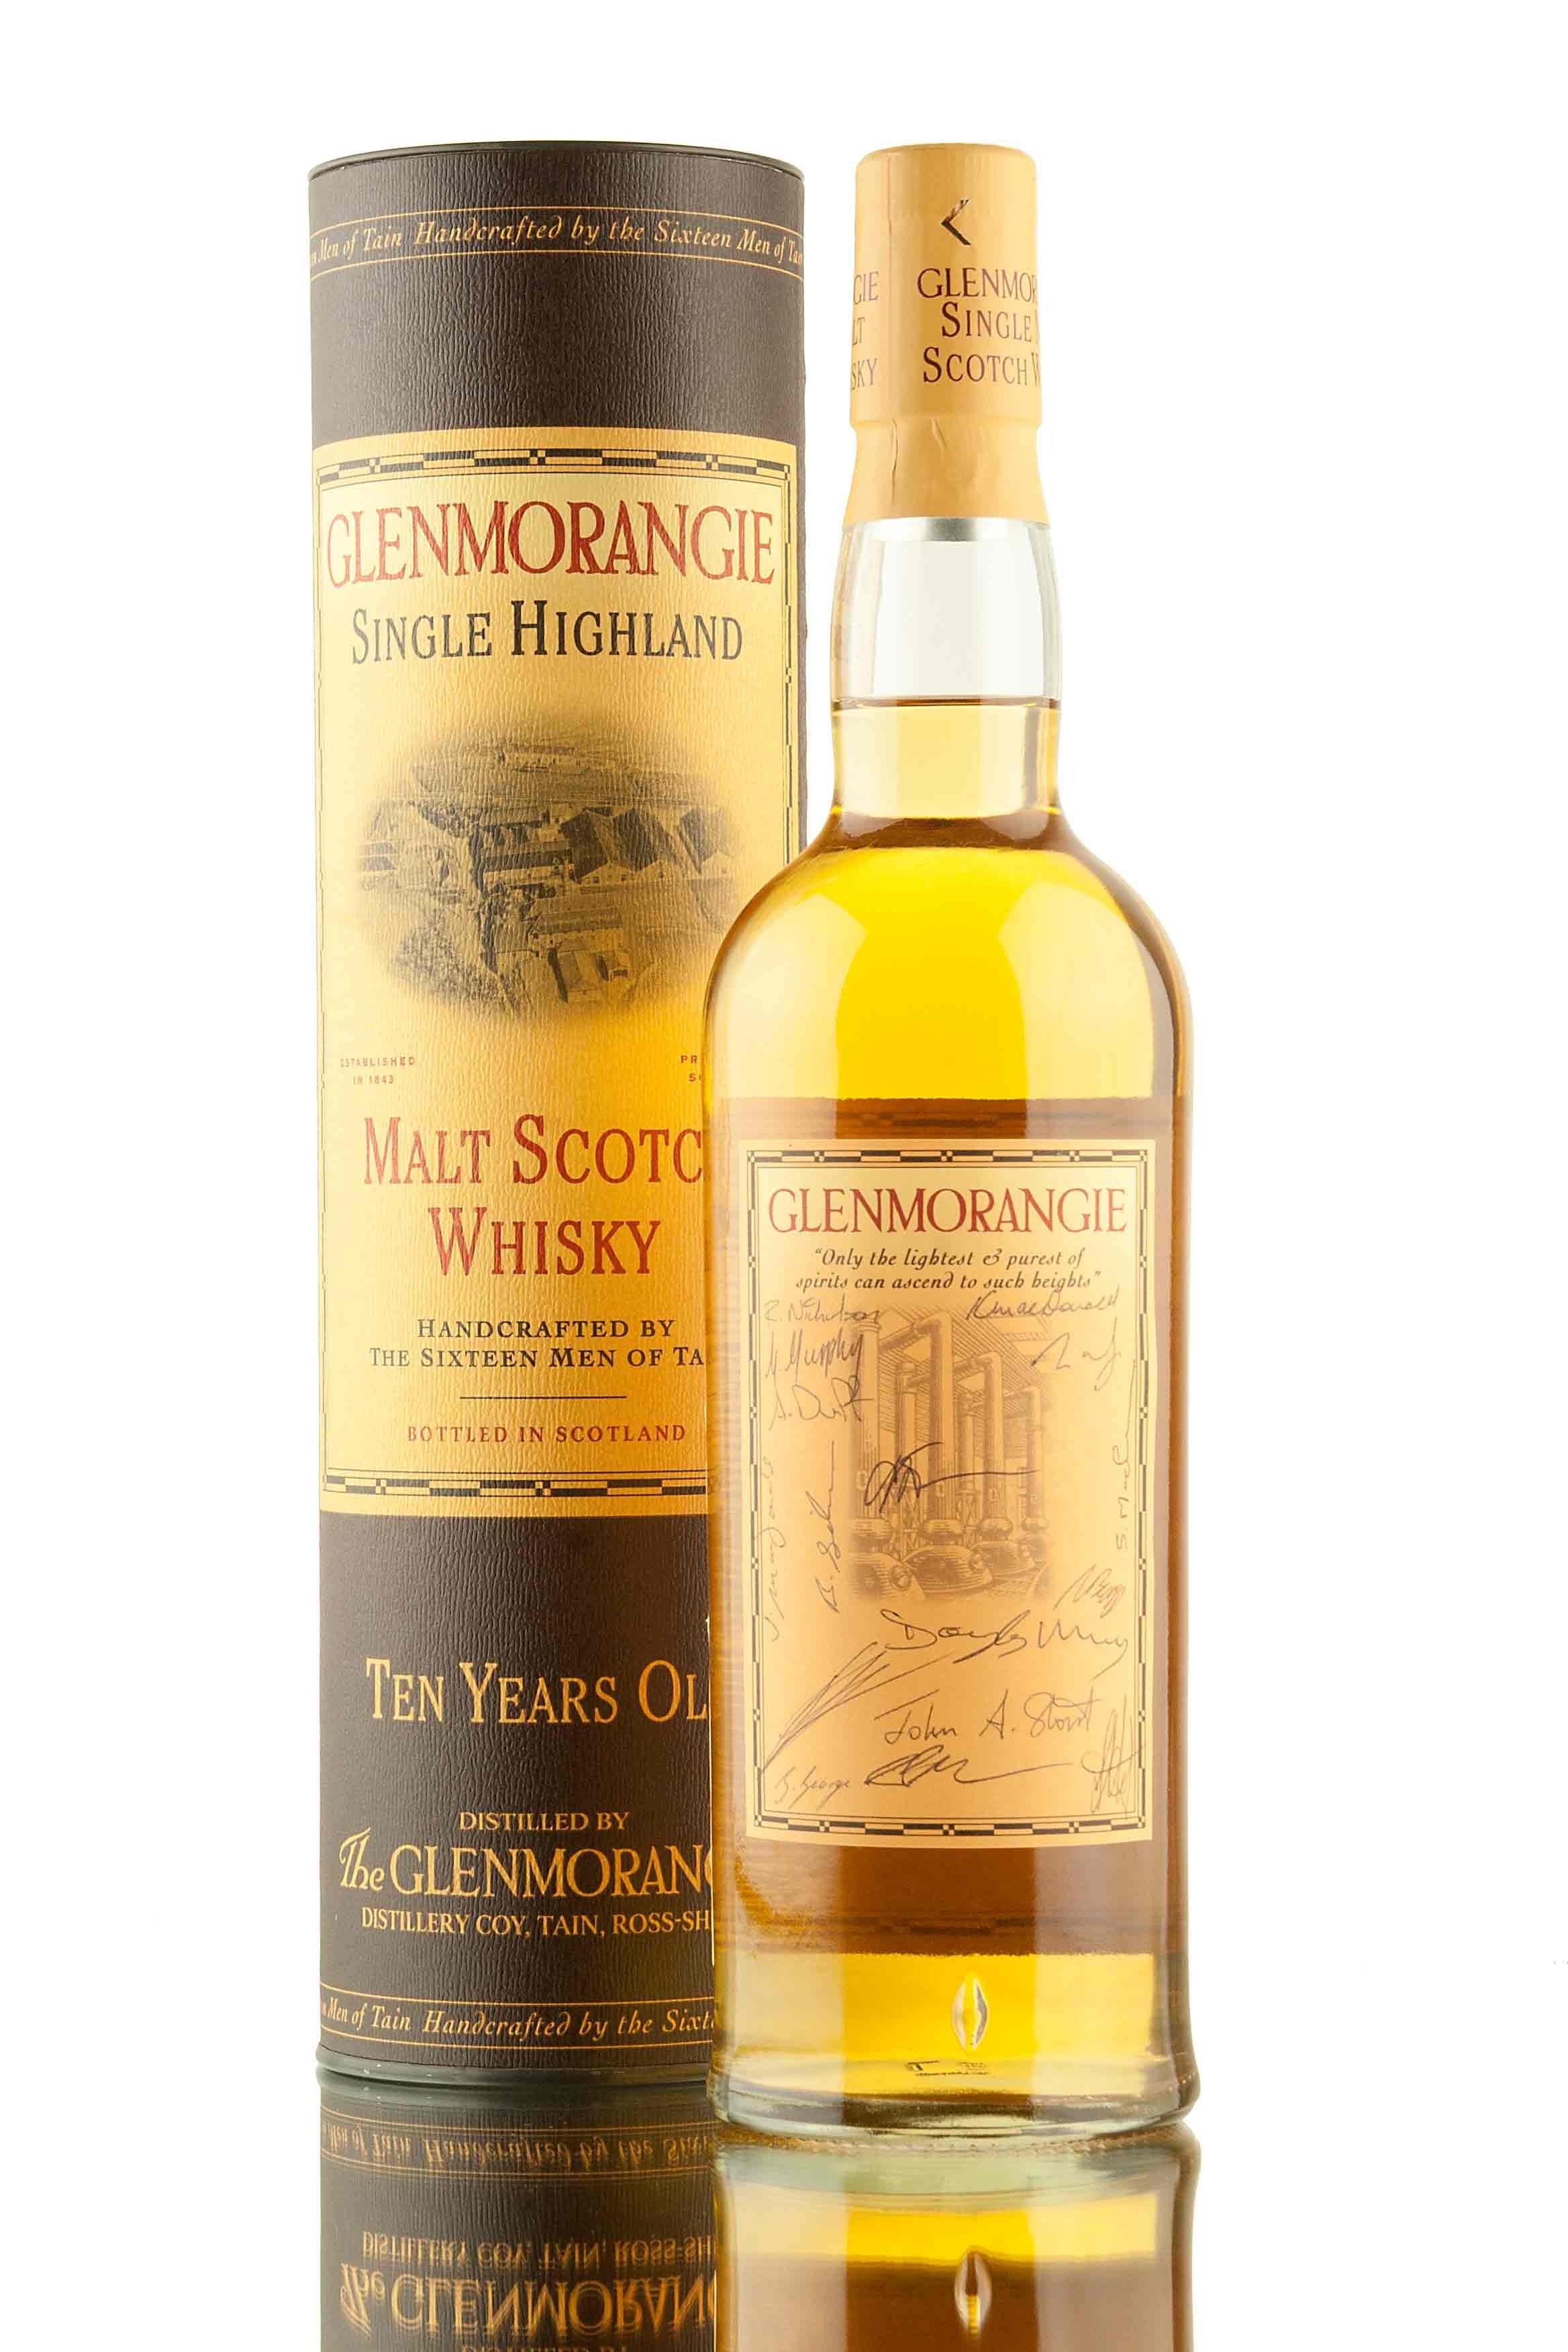 Glenmorangie Hand Signed By The Sixteen Men Of Tain